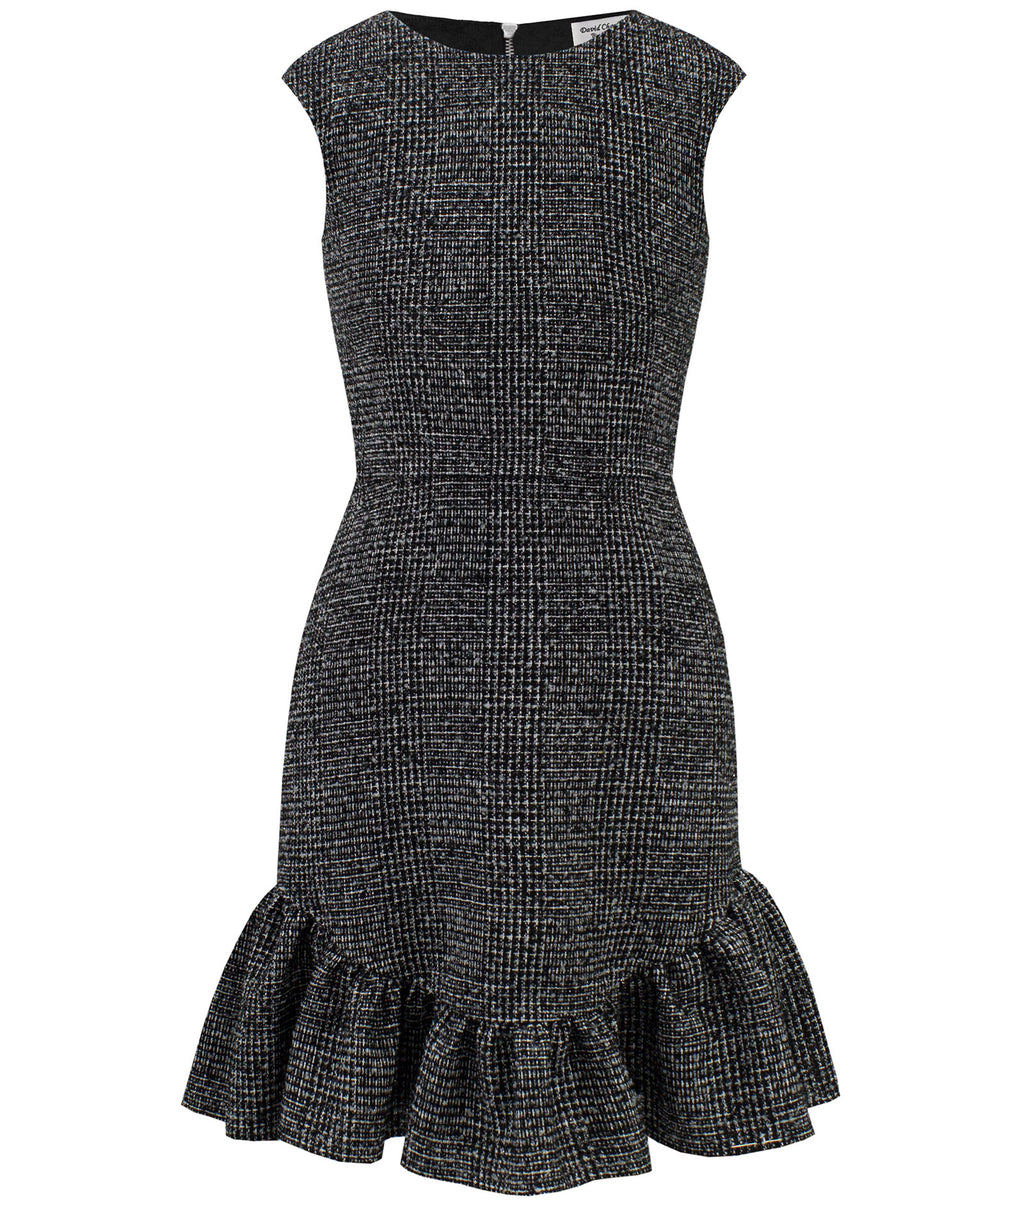 David Charles Girls Black Plaid Dress